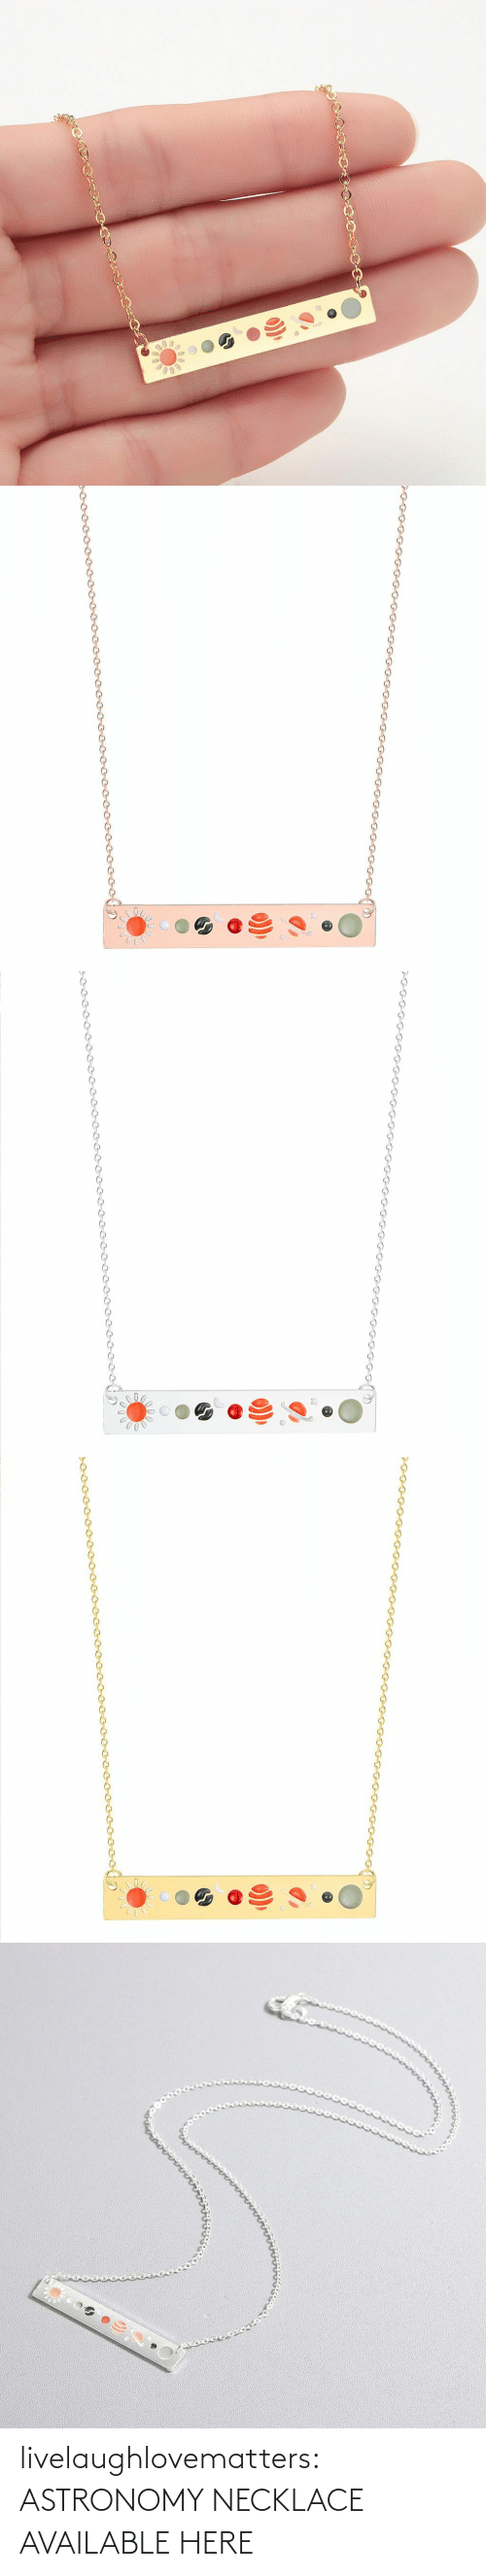 gif: livelaughlovematters:  ASTRONOMY NECKLACE AVAILABLE HERE